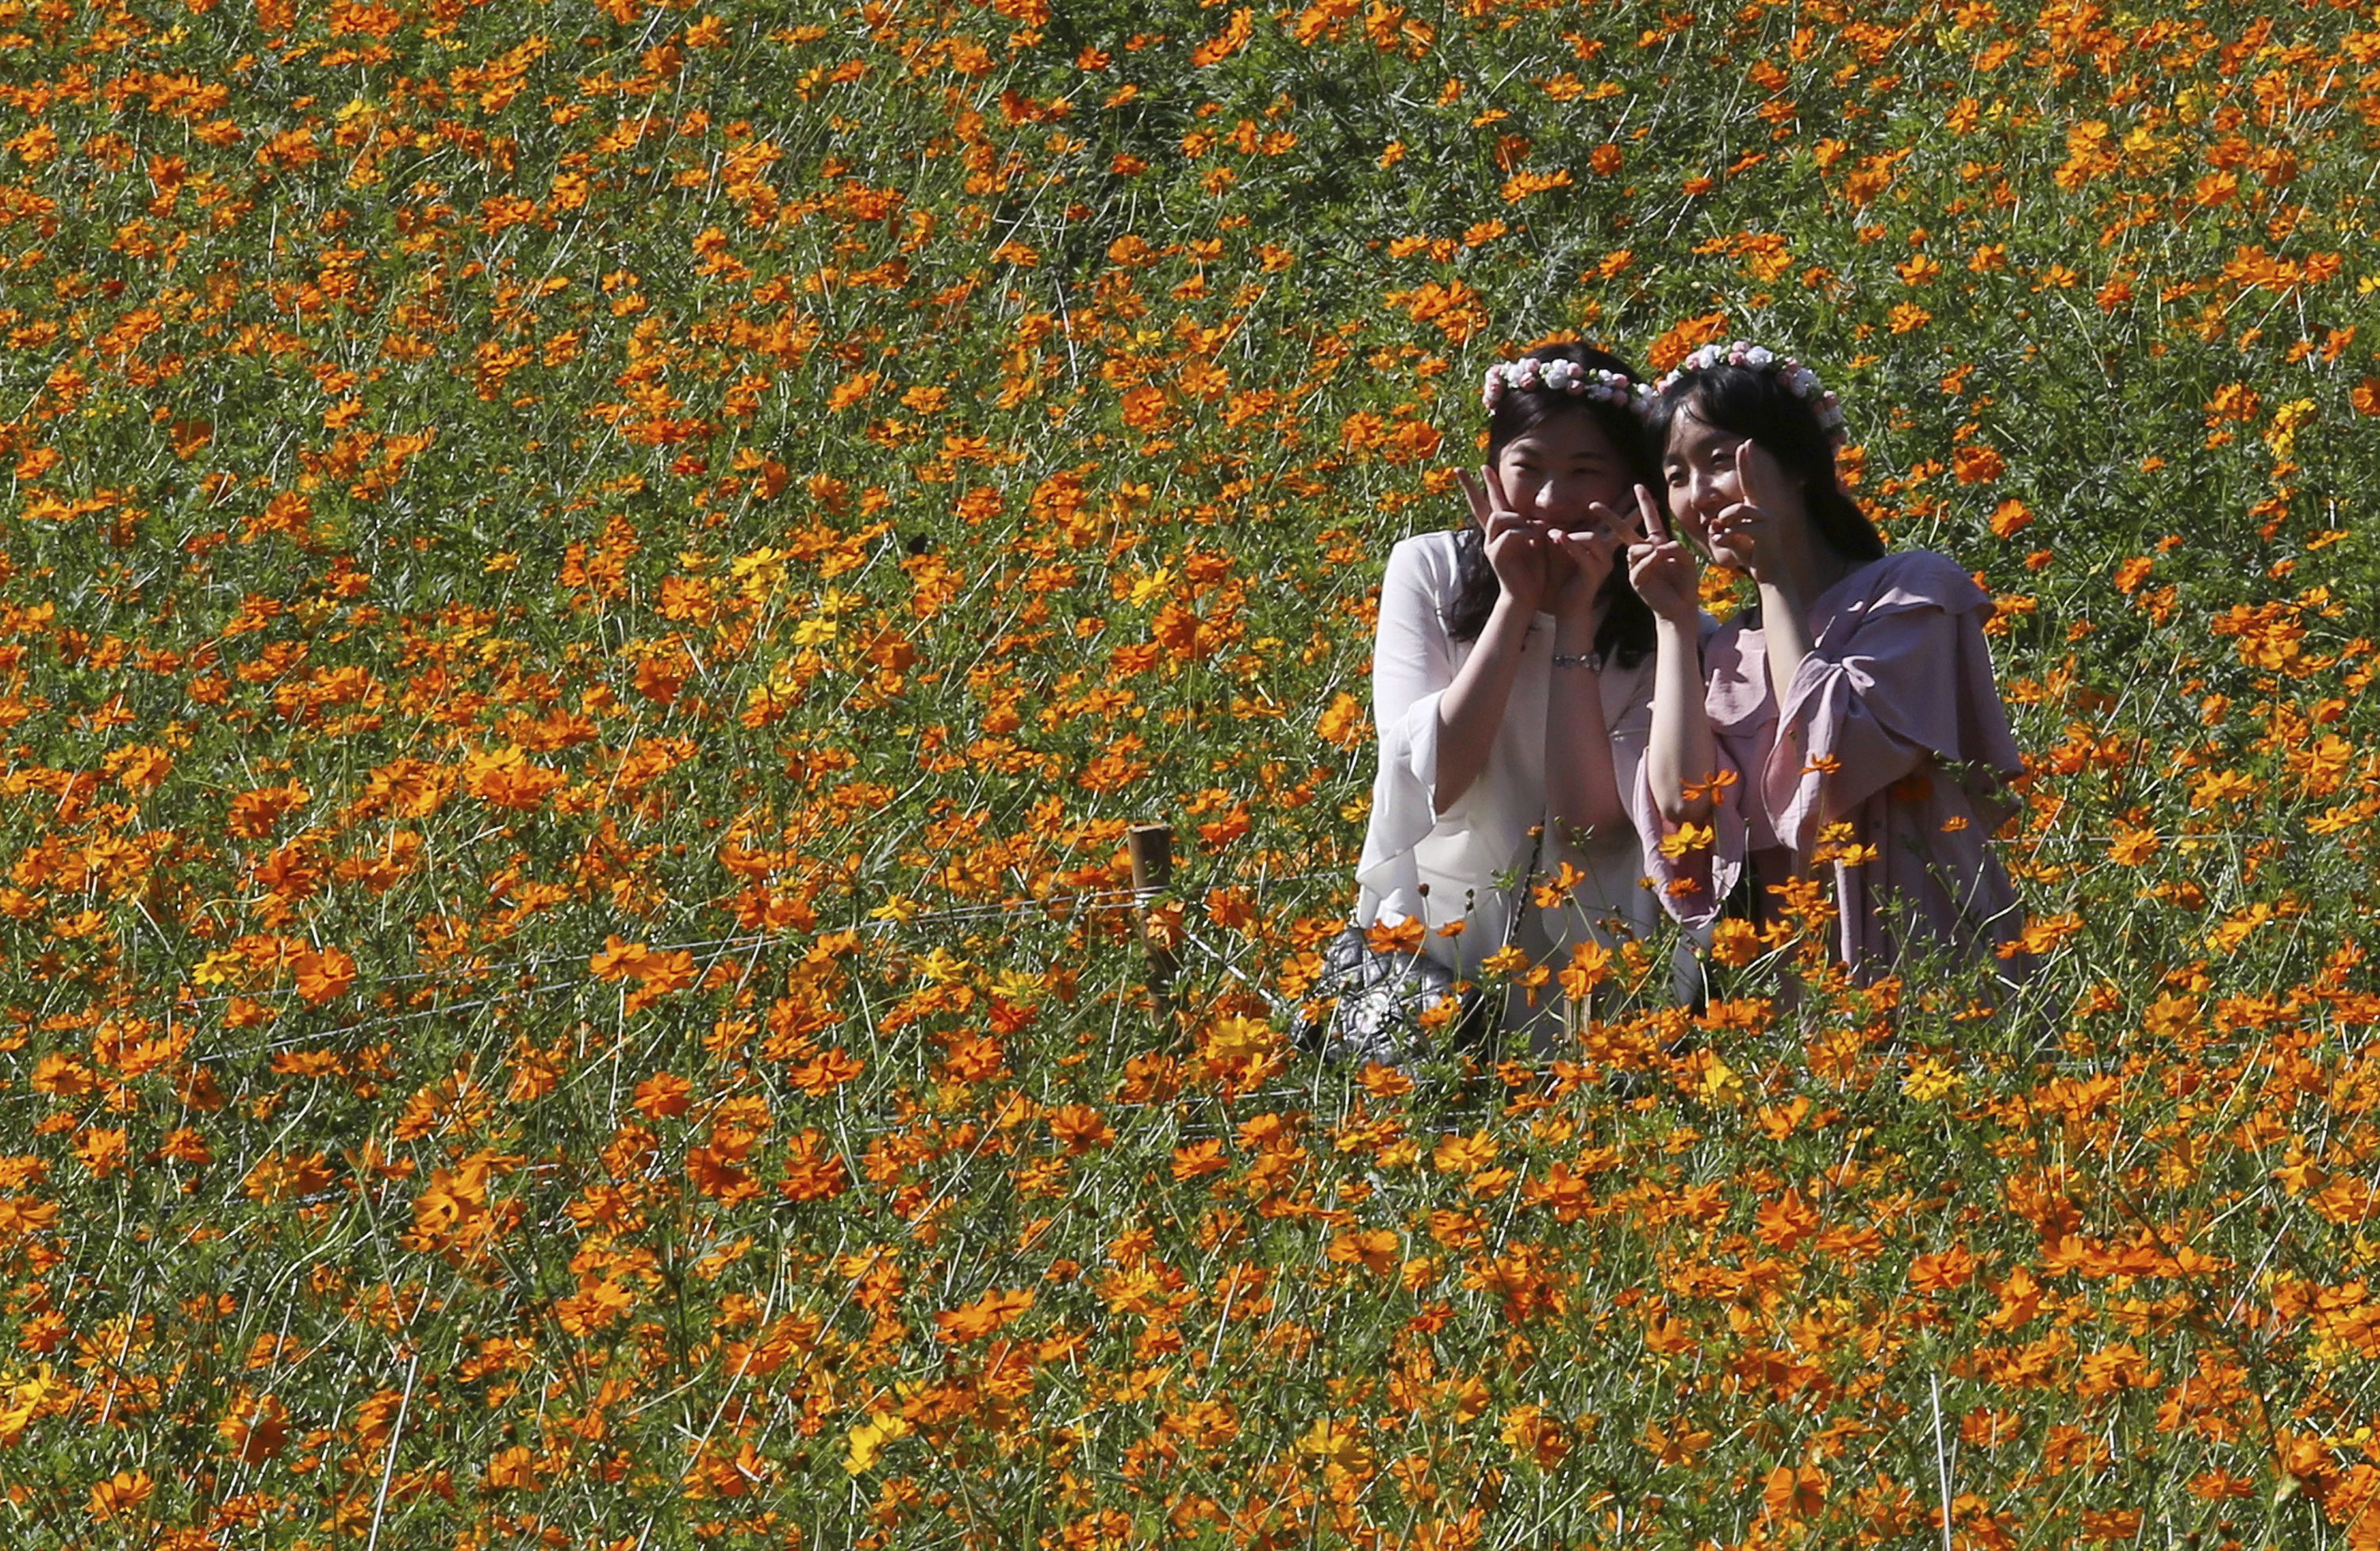 Women pose to take pictures in the middle of a field of cosmos flowers at the Olympic Park in Seoul, South Korea, Wednesday, Sept. 13, 2017.